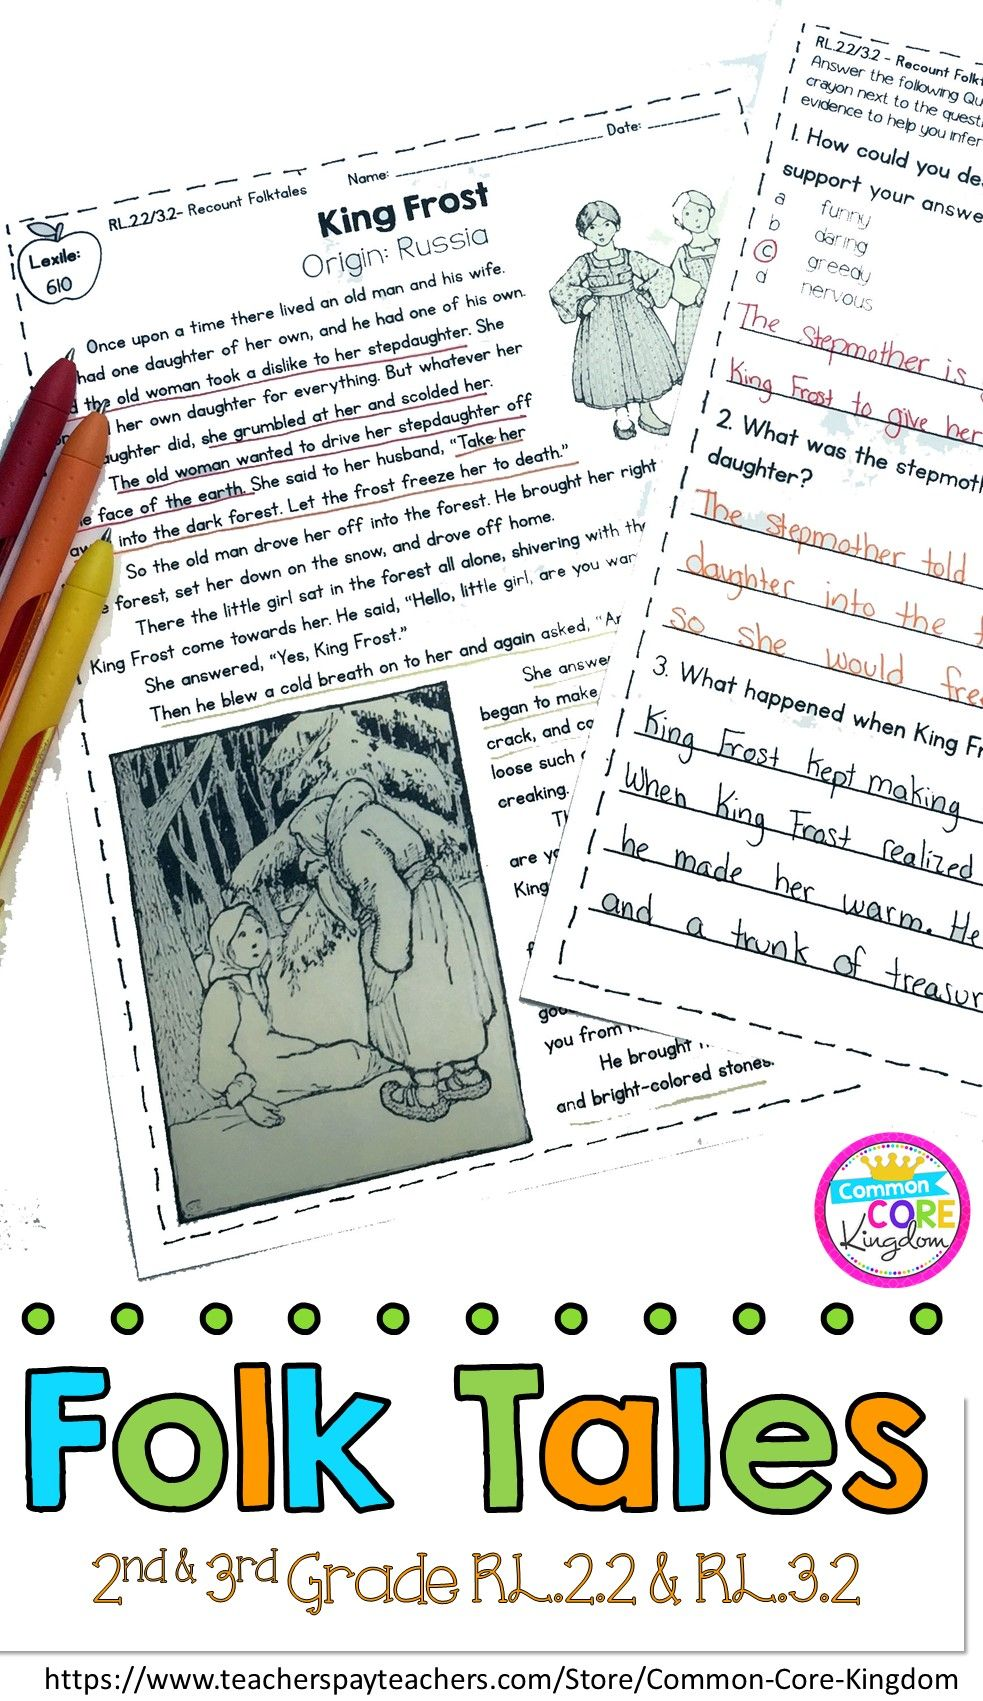 Are You Looking For 2nd And 3rd Grade Folktale And Fairytale Reading Comprehension Passages For Common 3rd Grade Reading Third Grade Reading 2nd Grade Reading Reading passages third grade common core